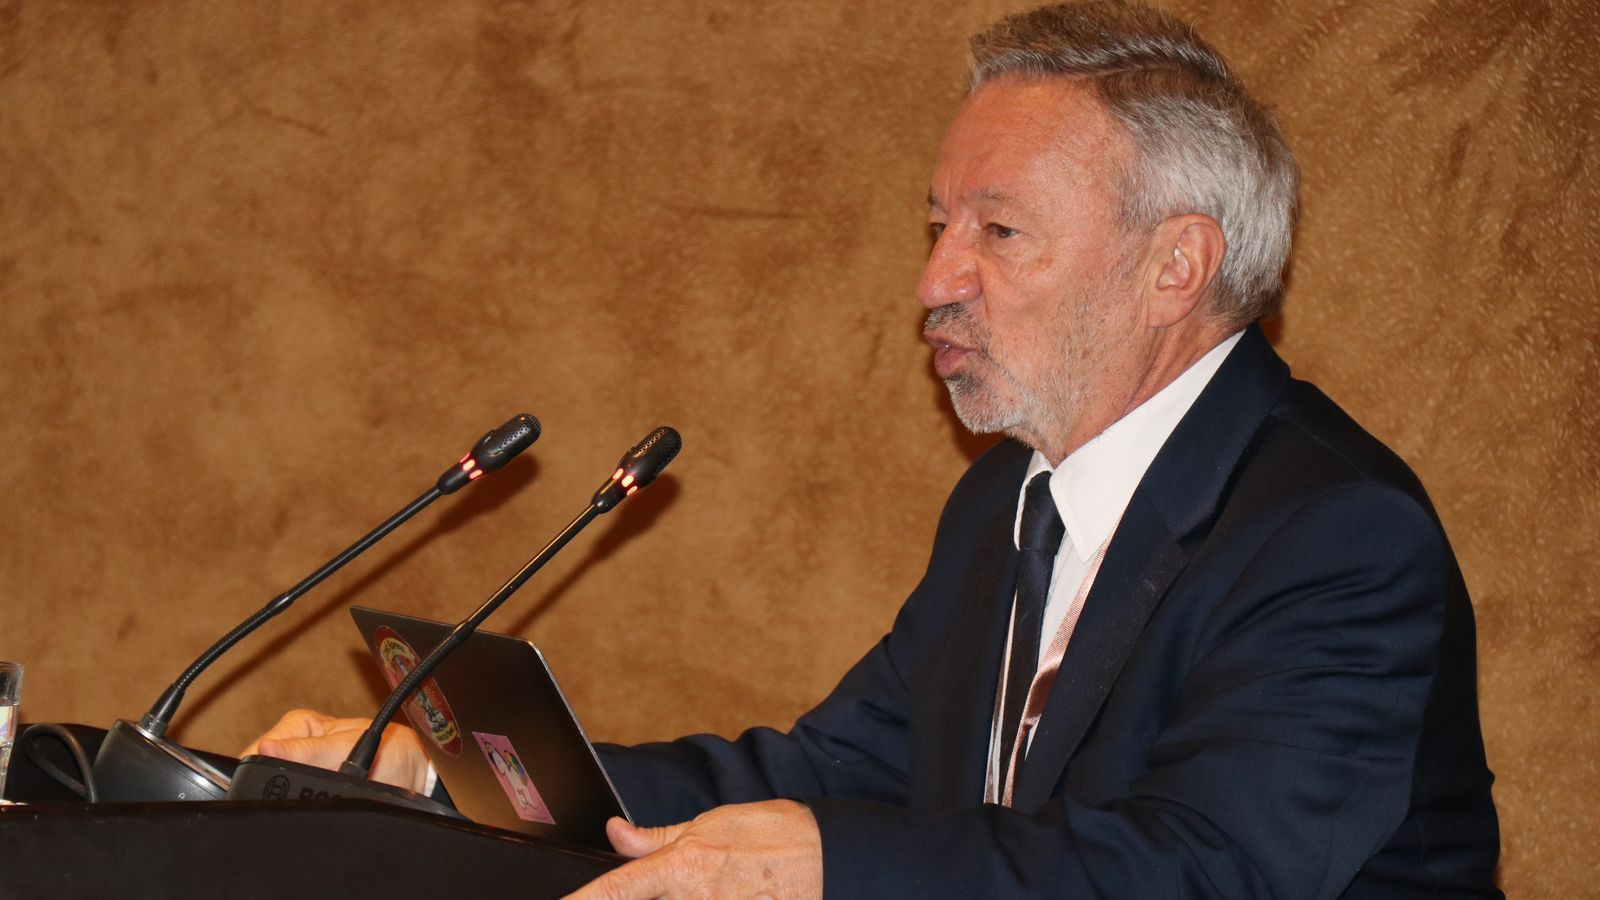 """Germán Velásquez: """"The main interest of the pharmaceutical industry is its shareholders, public health comes after"""""""